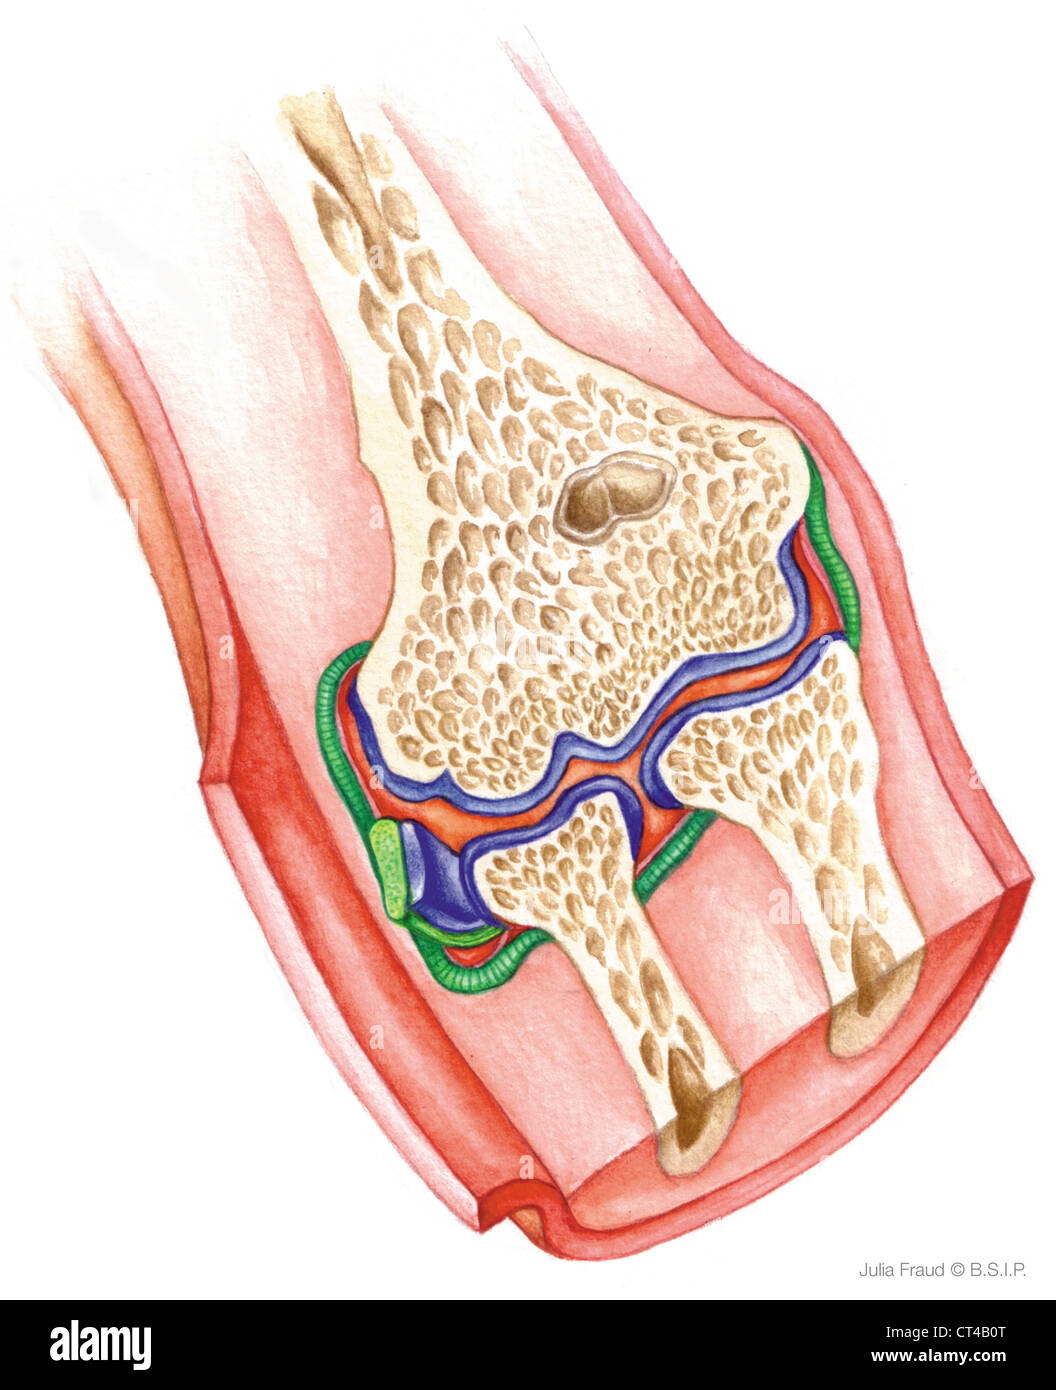 Annular Ligament Of Radius Stock Photos Annular Ligament Of Radius